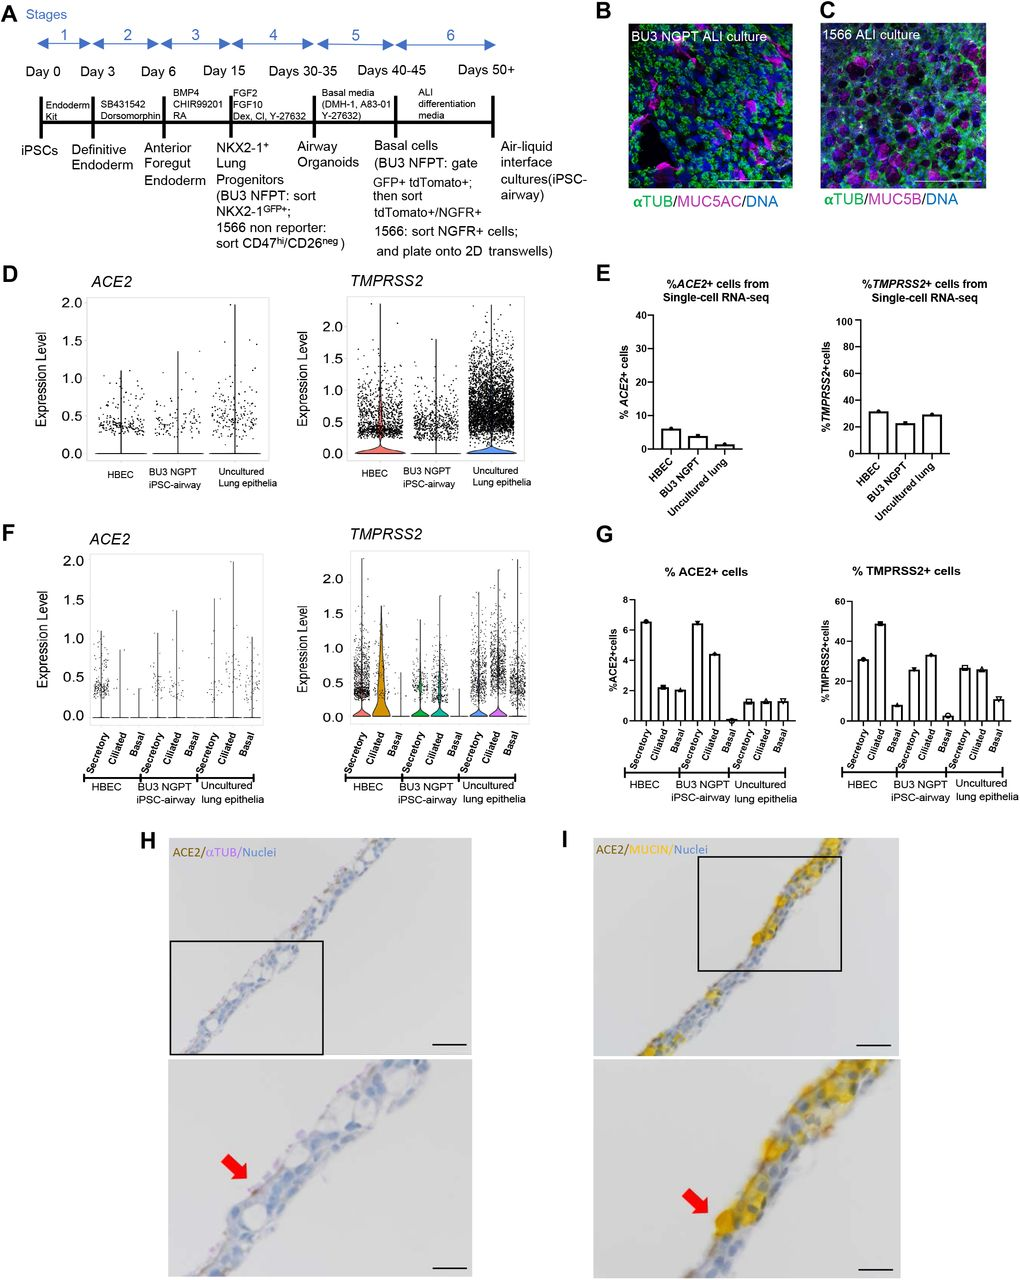 iPSC-derived airway cells express SARS-CoV-2 entry factors ACE2 and TMPRSS2 A) Schematic of the 6-stage differentiation protocol of generating iPSC-airway. B) Immunofluorescence analysis of BU3 NGPT iPSC-airway stained with anti-α-TUBULIN and MUC5AC (scale bar = 100 μm). Nuclei are stained with HOESCHT (blue). C) Immunofluorescence analysis of 1566 iPSC airway, stained with anti-α-TUBULIN and MUC5B (scale bar = 100μm). Nuclei are stained with DAPI (blue). D-G) scRNA-seq analysis of HBEC 40 , iPSC-airway (BU3 NGPT) 40 , and freshly isolated uncultured lung epithelia 42 . D) Violin plots of ACE2 and TMPRSS2 expression. E) The percentage of ACE2 and TMPRSS2 positive cells in each dataset 40 . F) Violin plots of ACE2 and TMPRSS2 expression by cellular type in each dataset. G) Comparison of the percentage of ACE2 and TMPRSS2 positive secretory, multiciliated, and basal cells in each dataset. H-I) Immunohistochemistry staining showing the localization of ACE2 (DAB), α-TUBULIN (purple, left panels) MUCIN (yellow, right panels) in iPSC-derived airway (BU3 NGPT) counterstained with hematoxylin (20x, scale bar =50μm). Lower panels are zoomed-in images of the black box in the upper panels. The red arrows indicated cells co-expressing ACE2/ α-TUBULIN (left) and ACE2/MUCIN (right) (scale bar =25μm).